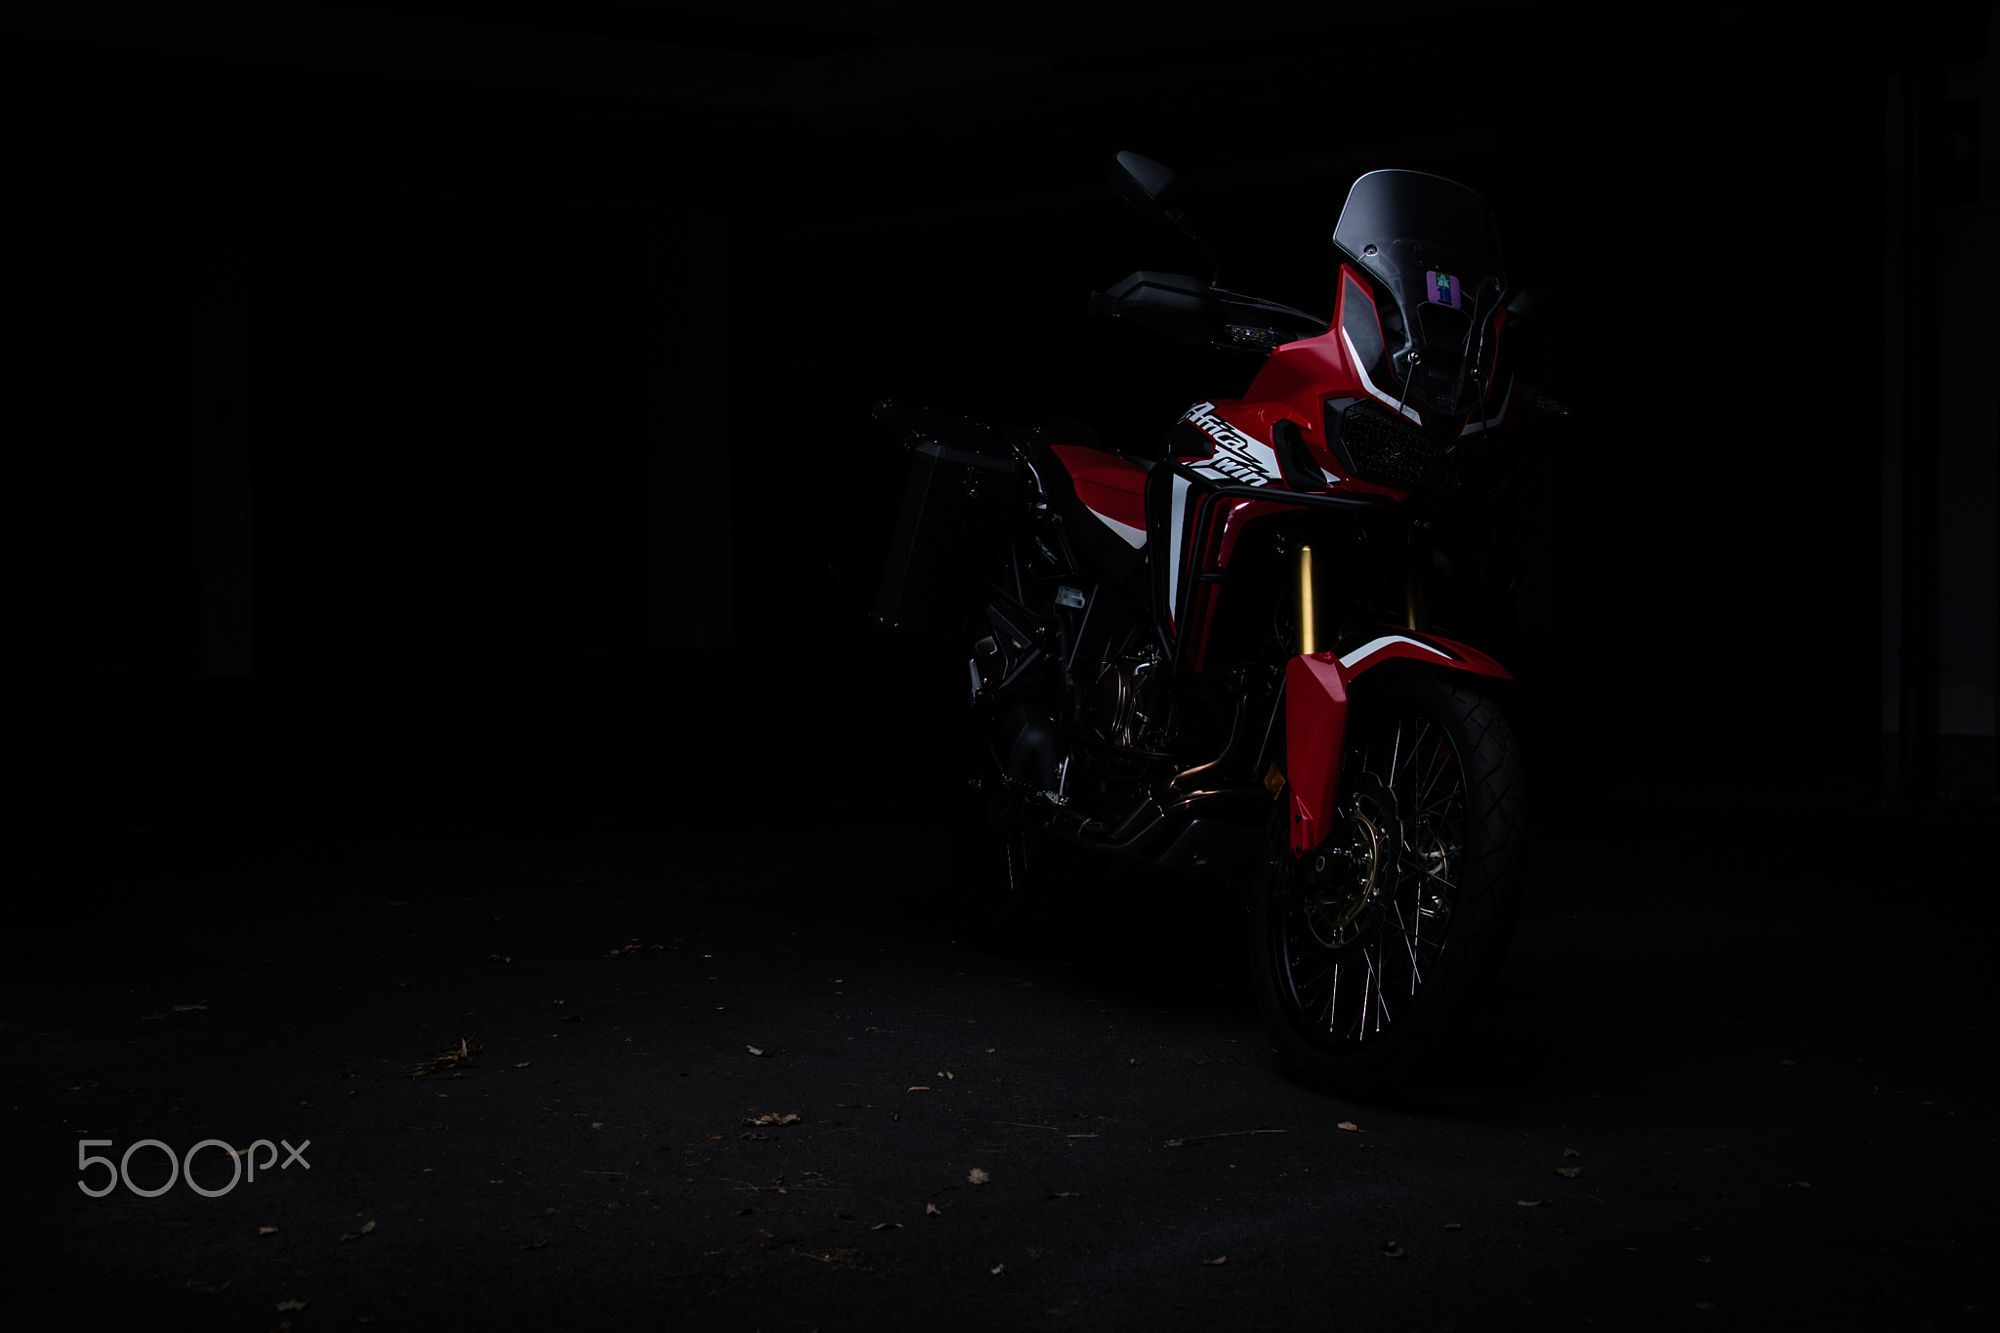 Hide And Seek Honda Africa Twin Hd Wallpaper From